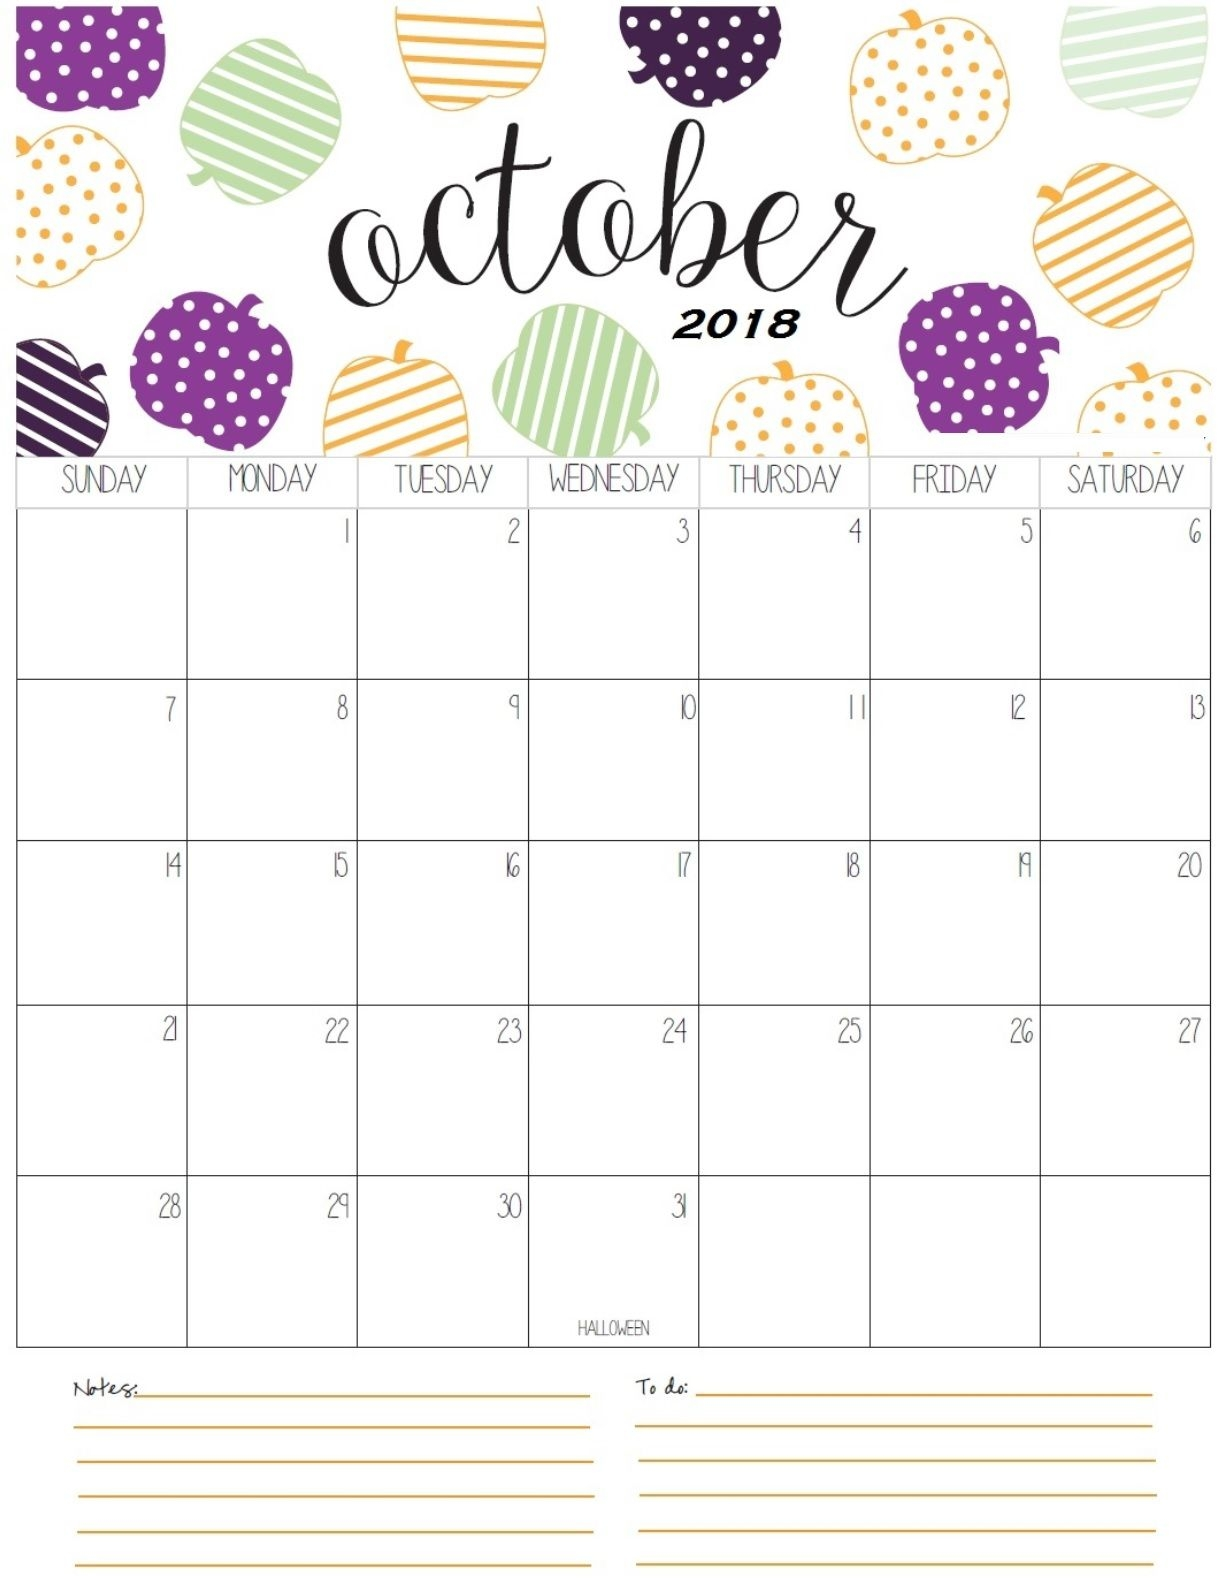 cute october 2018 calendar calendar 2018 pinterest planners October 2018 Calendar Free erdferdf